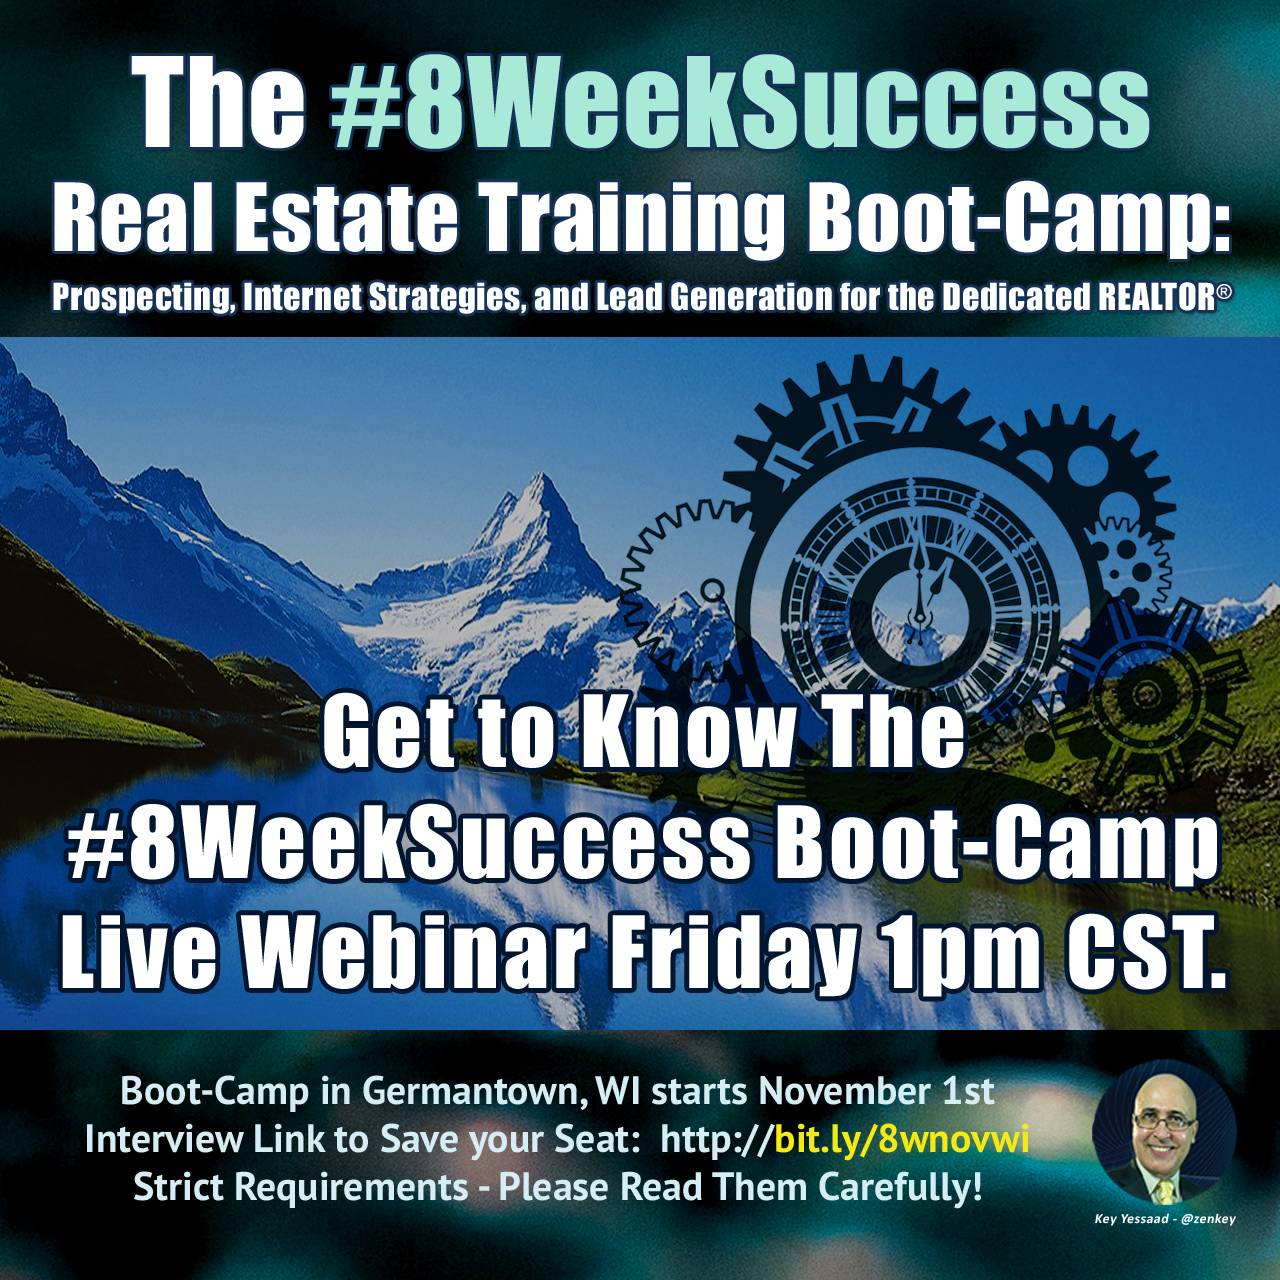 #8WeekSuccess - Get to Know the Boot-Camp - Live Webinar Friday October 11th...